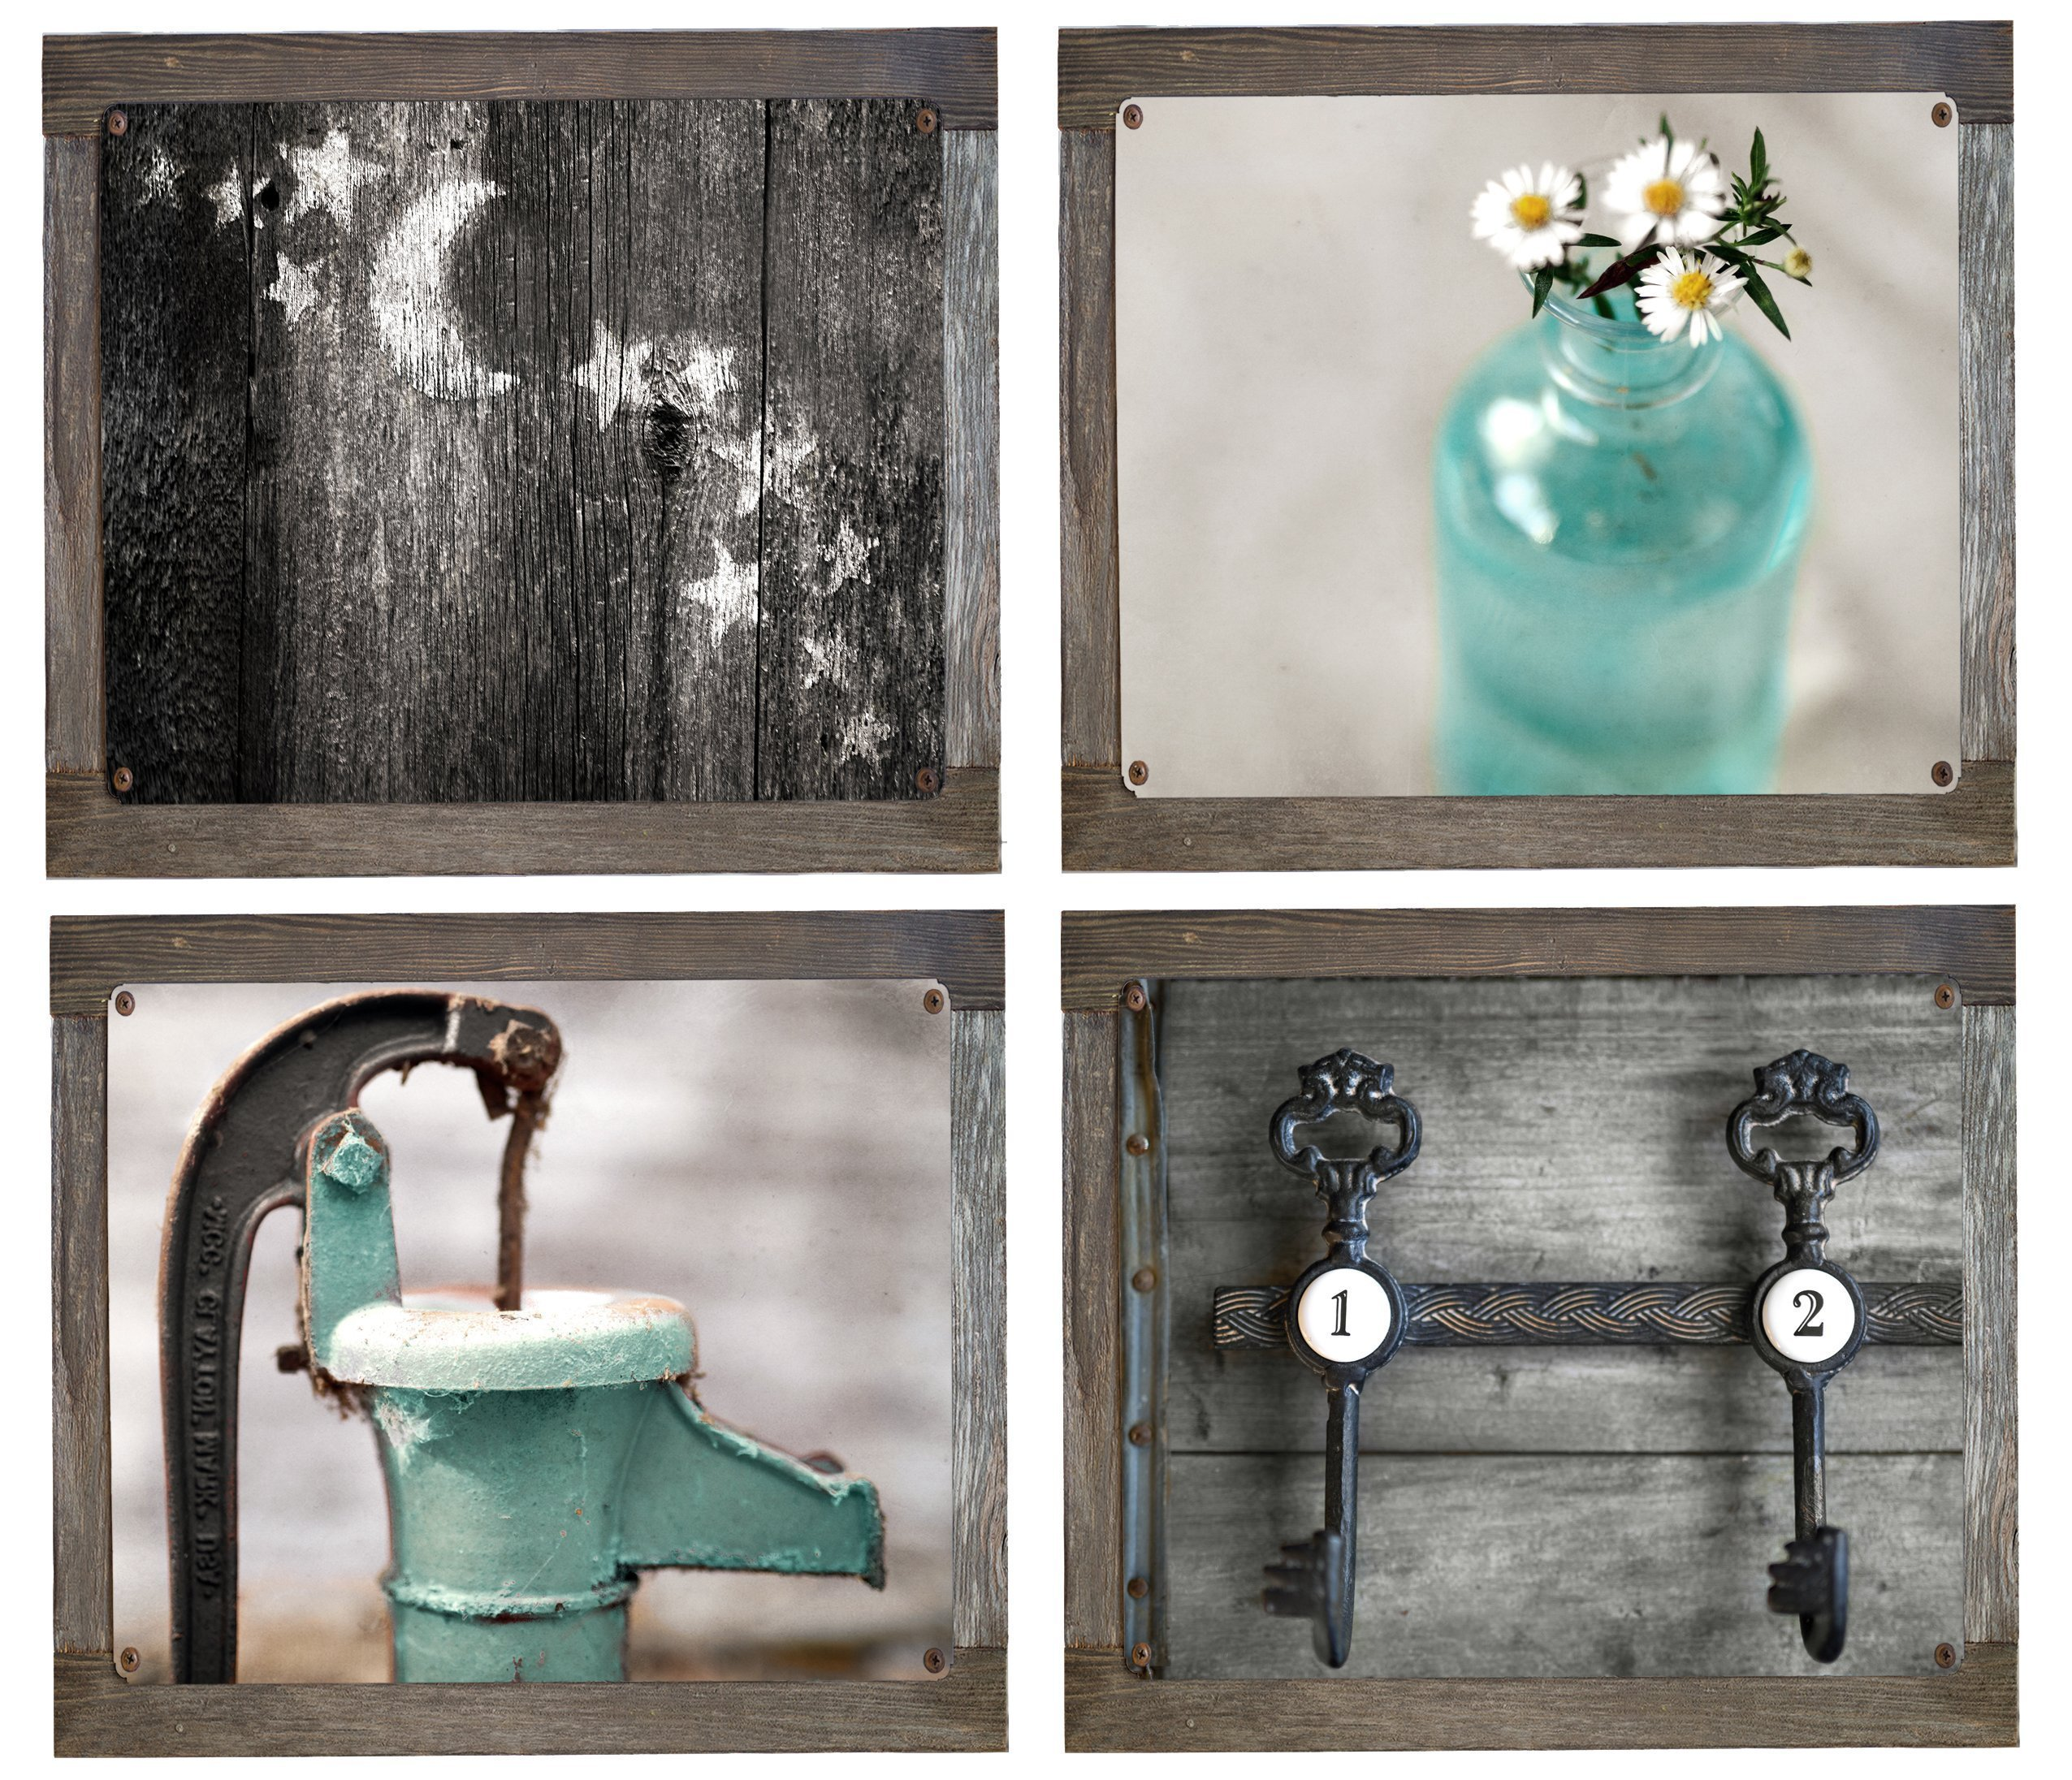 Rustic Bath 4 Metal Print Set with Barnwood Frames- 12''X12'', Country Decor, Primative, Rustic Bath, Farmhouse, Teal, Aqua